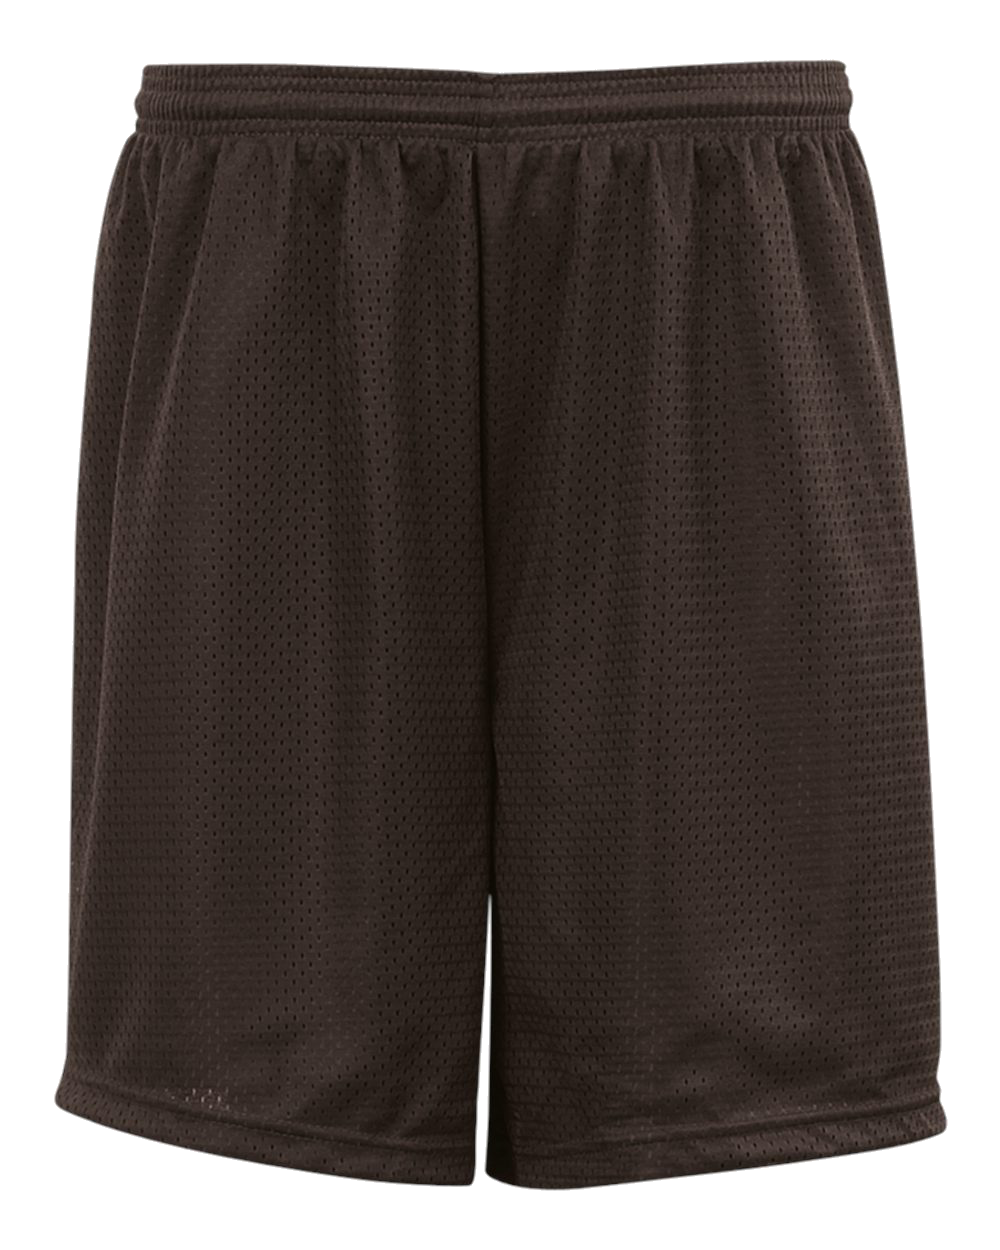 Mesh/Tricot 9 Inch Short - Brown